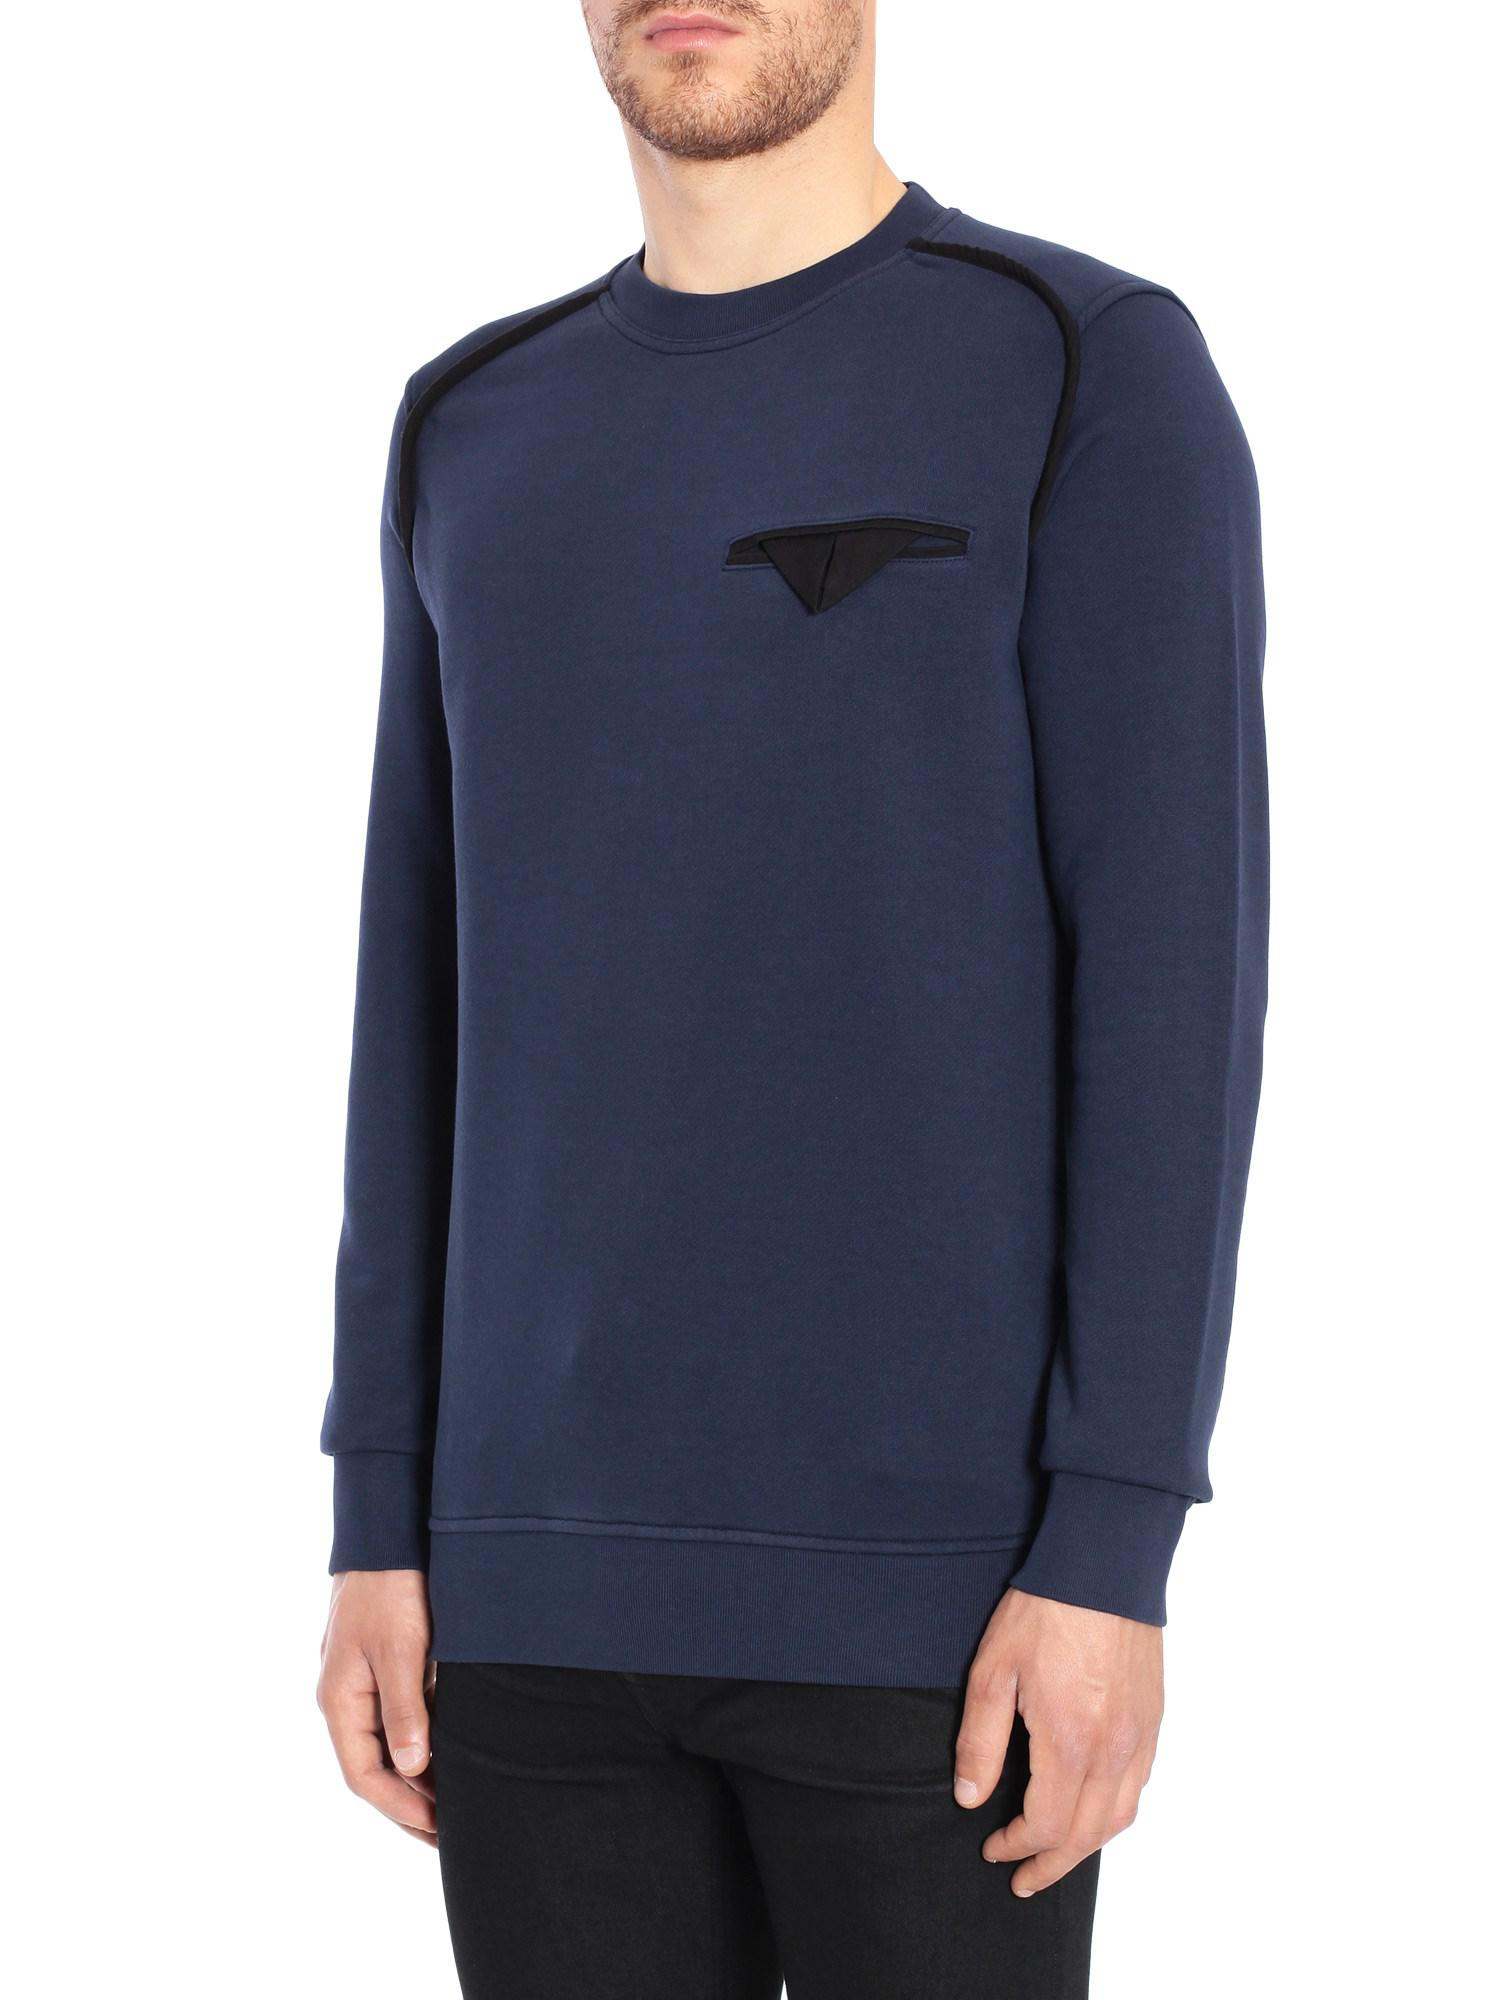 4144461d57f Lyst - Diesel Black Gold Spixa Cotton Sweatshirt in Blue for Men